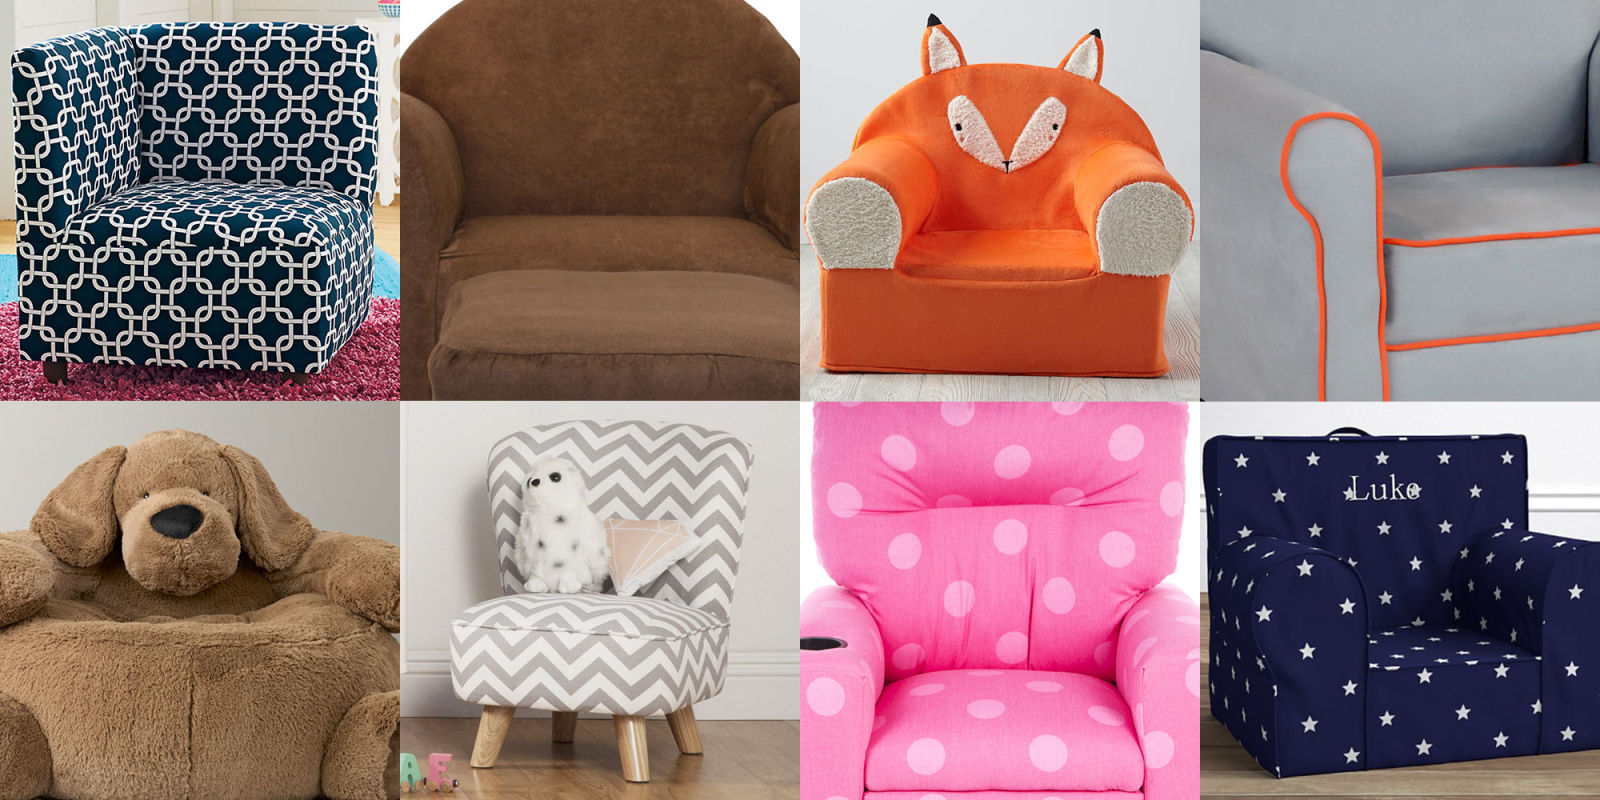 11 Best Kids Upholstered Chairs in 2017 - Upholstered Chairs and Recliners for Kids : recliner chairs for toddlers - islam-shia.org